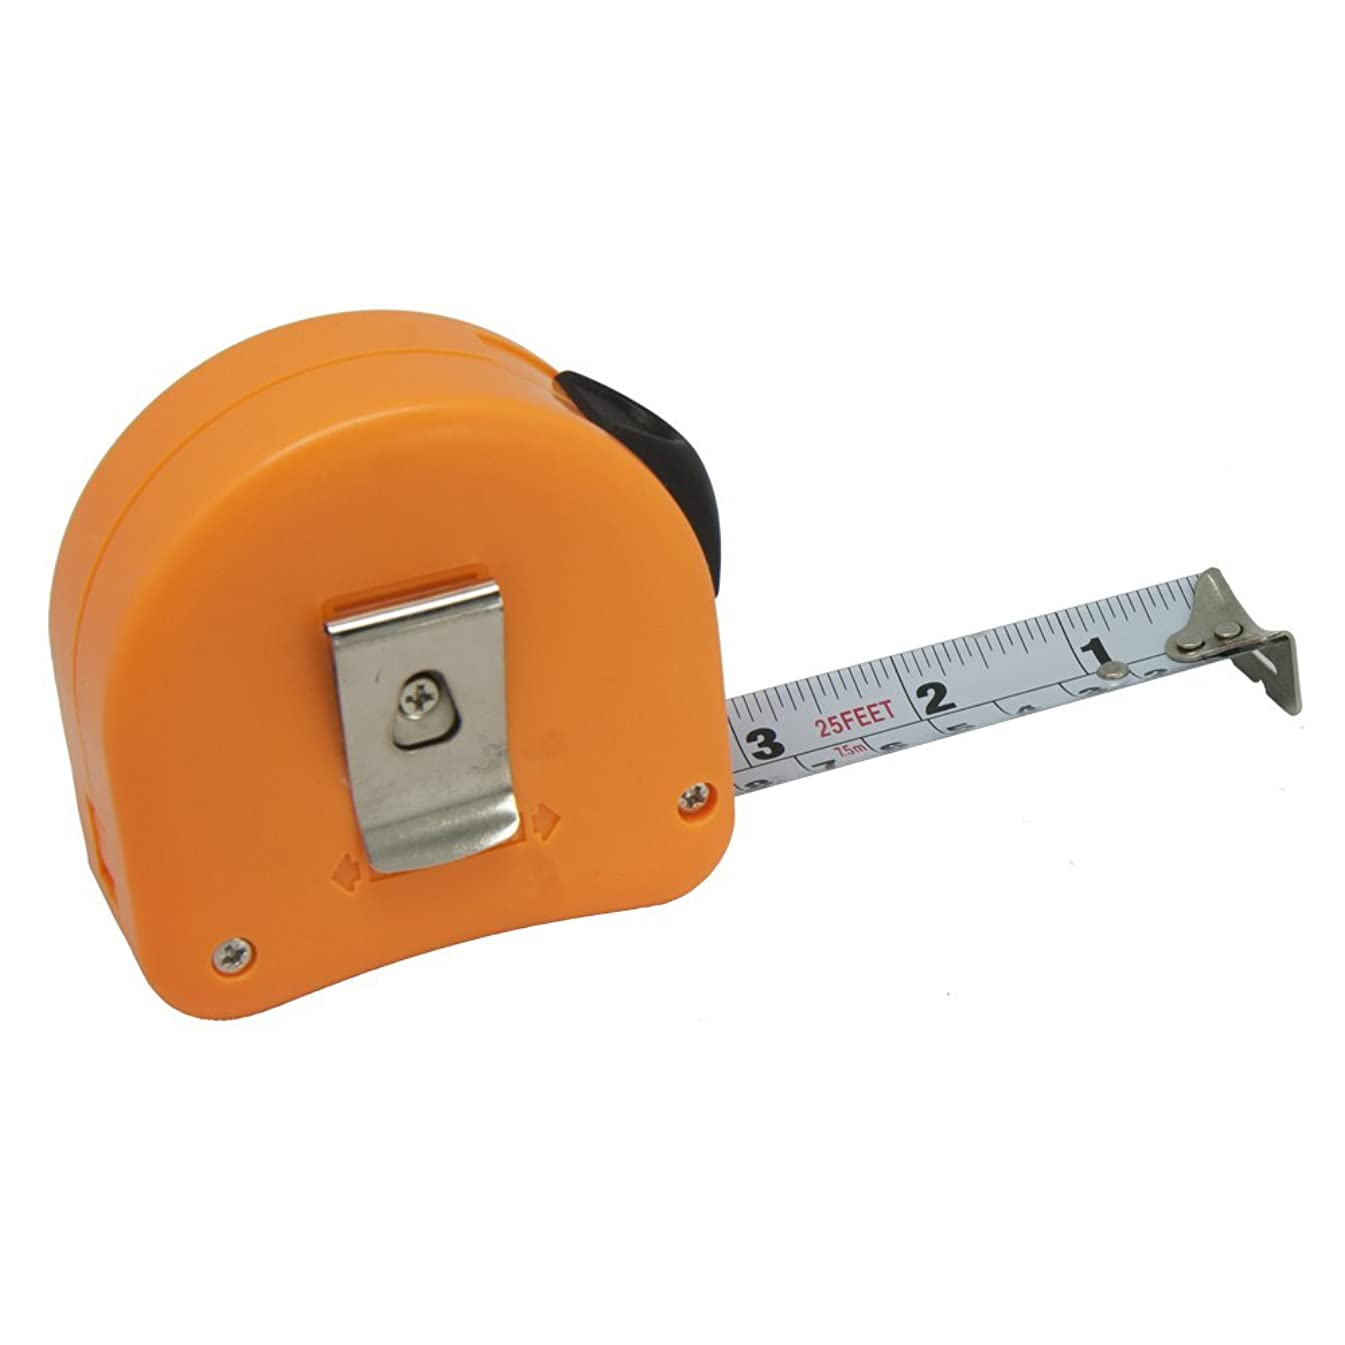 Left Handed Tape Measure with Right-to-left Read, Retractable 25'